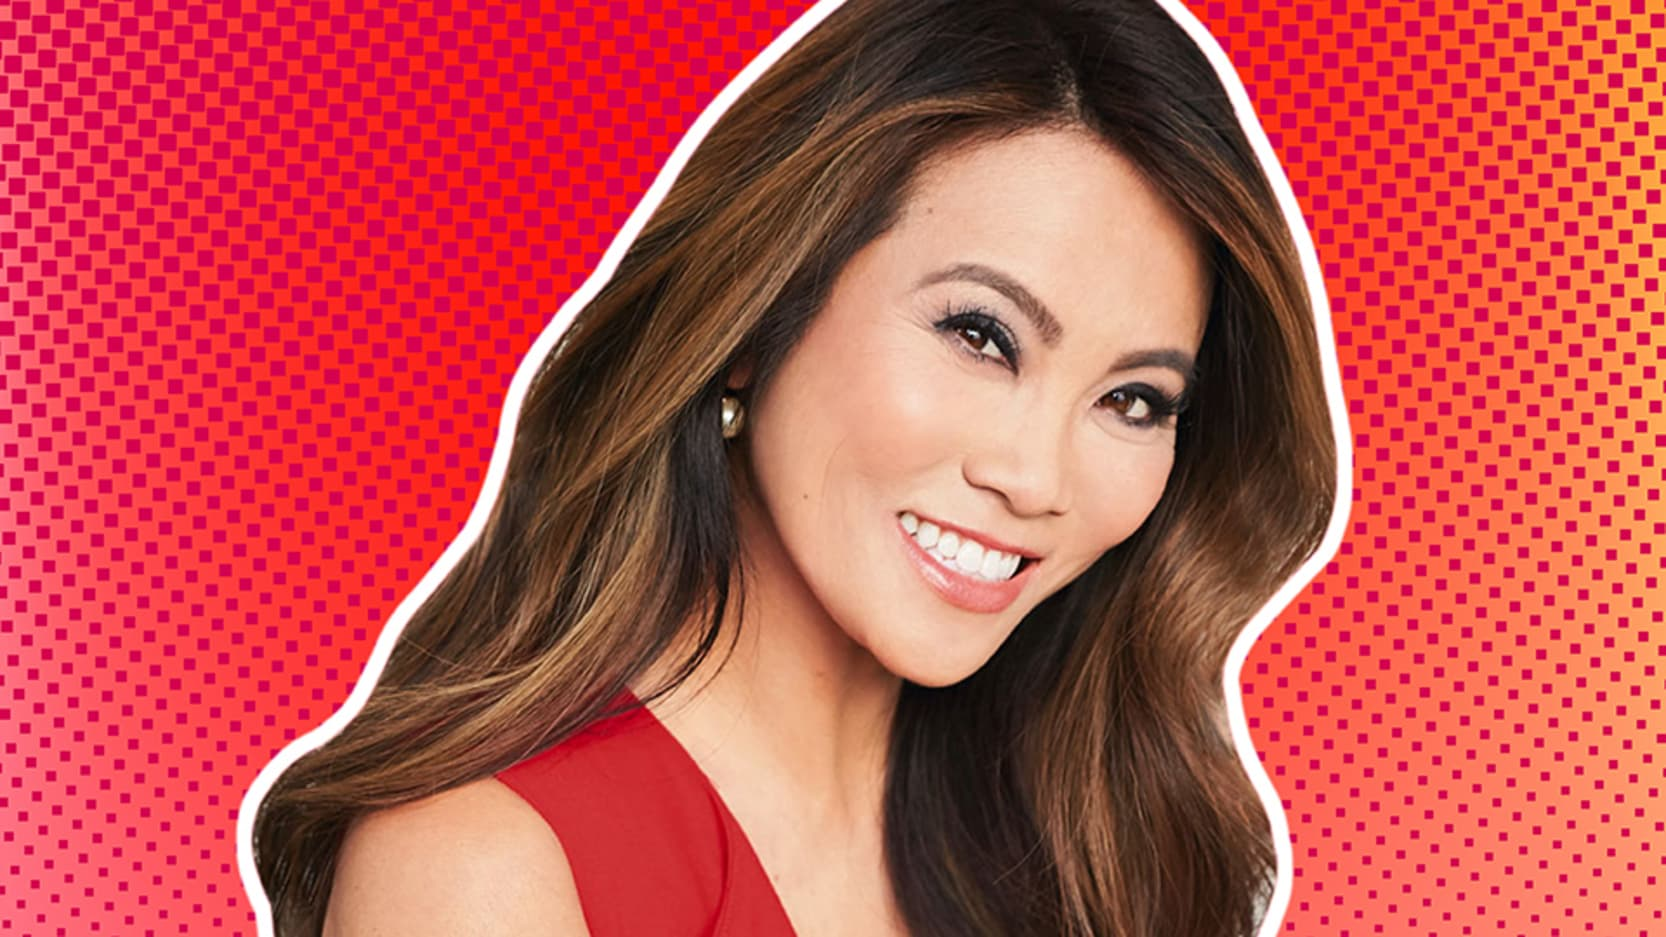 5 Things Dr. Pimple Popper Wants You to Know About Skin Care